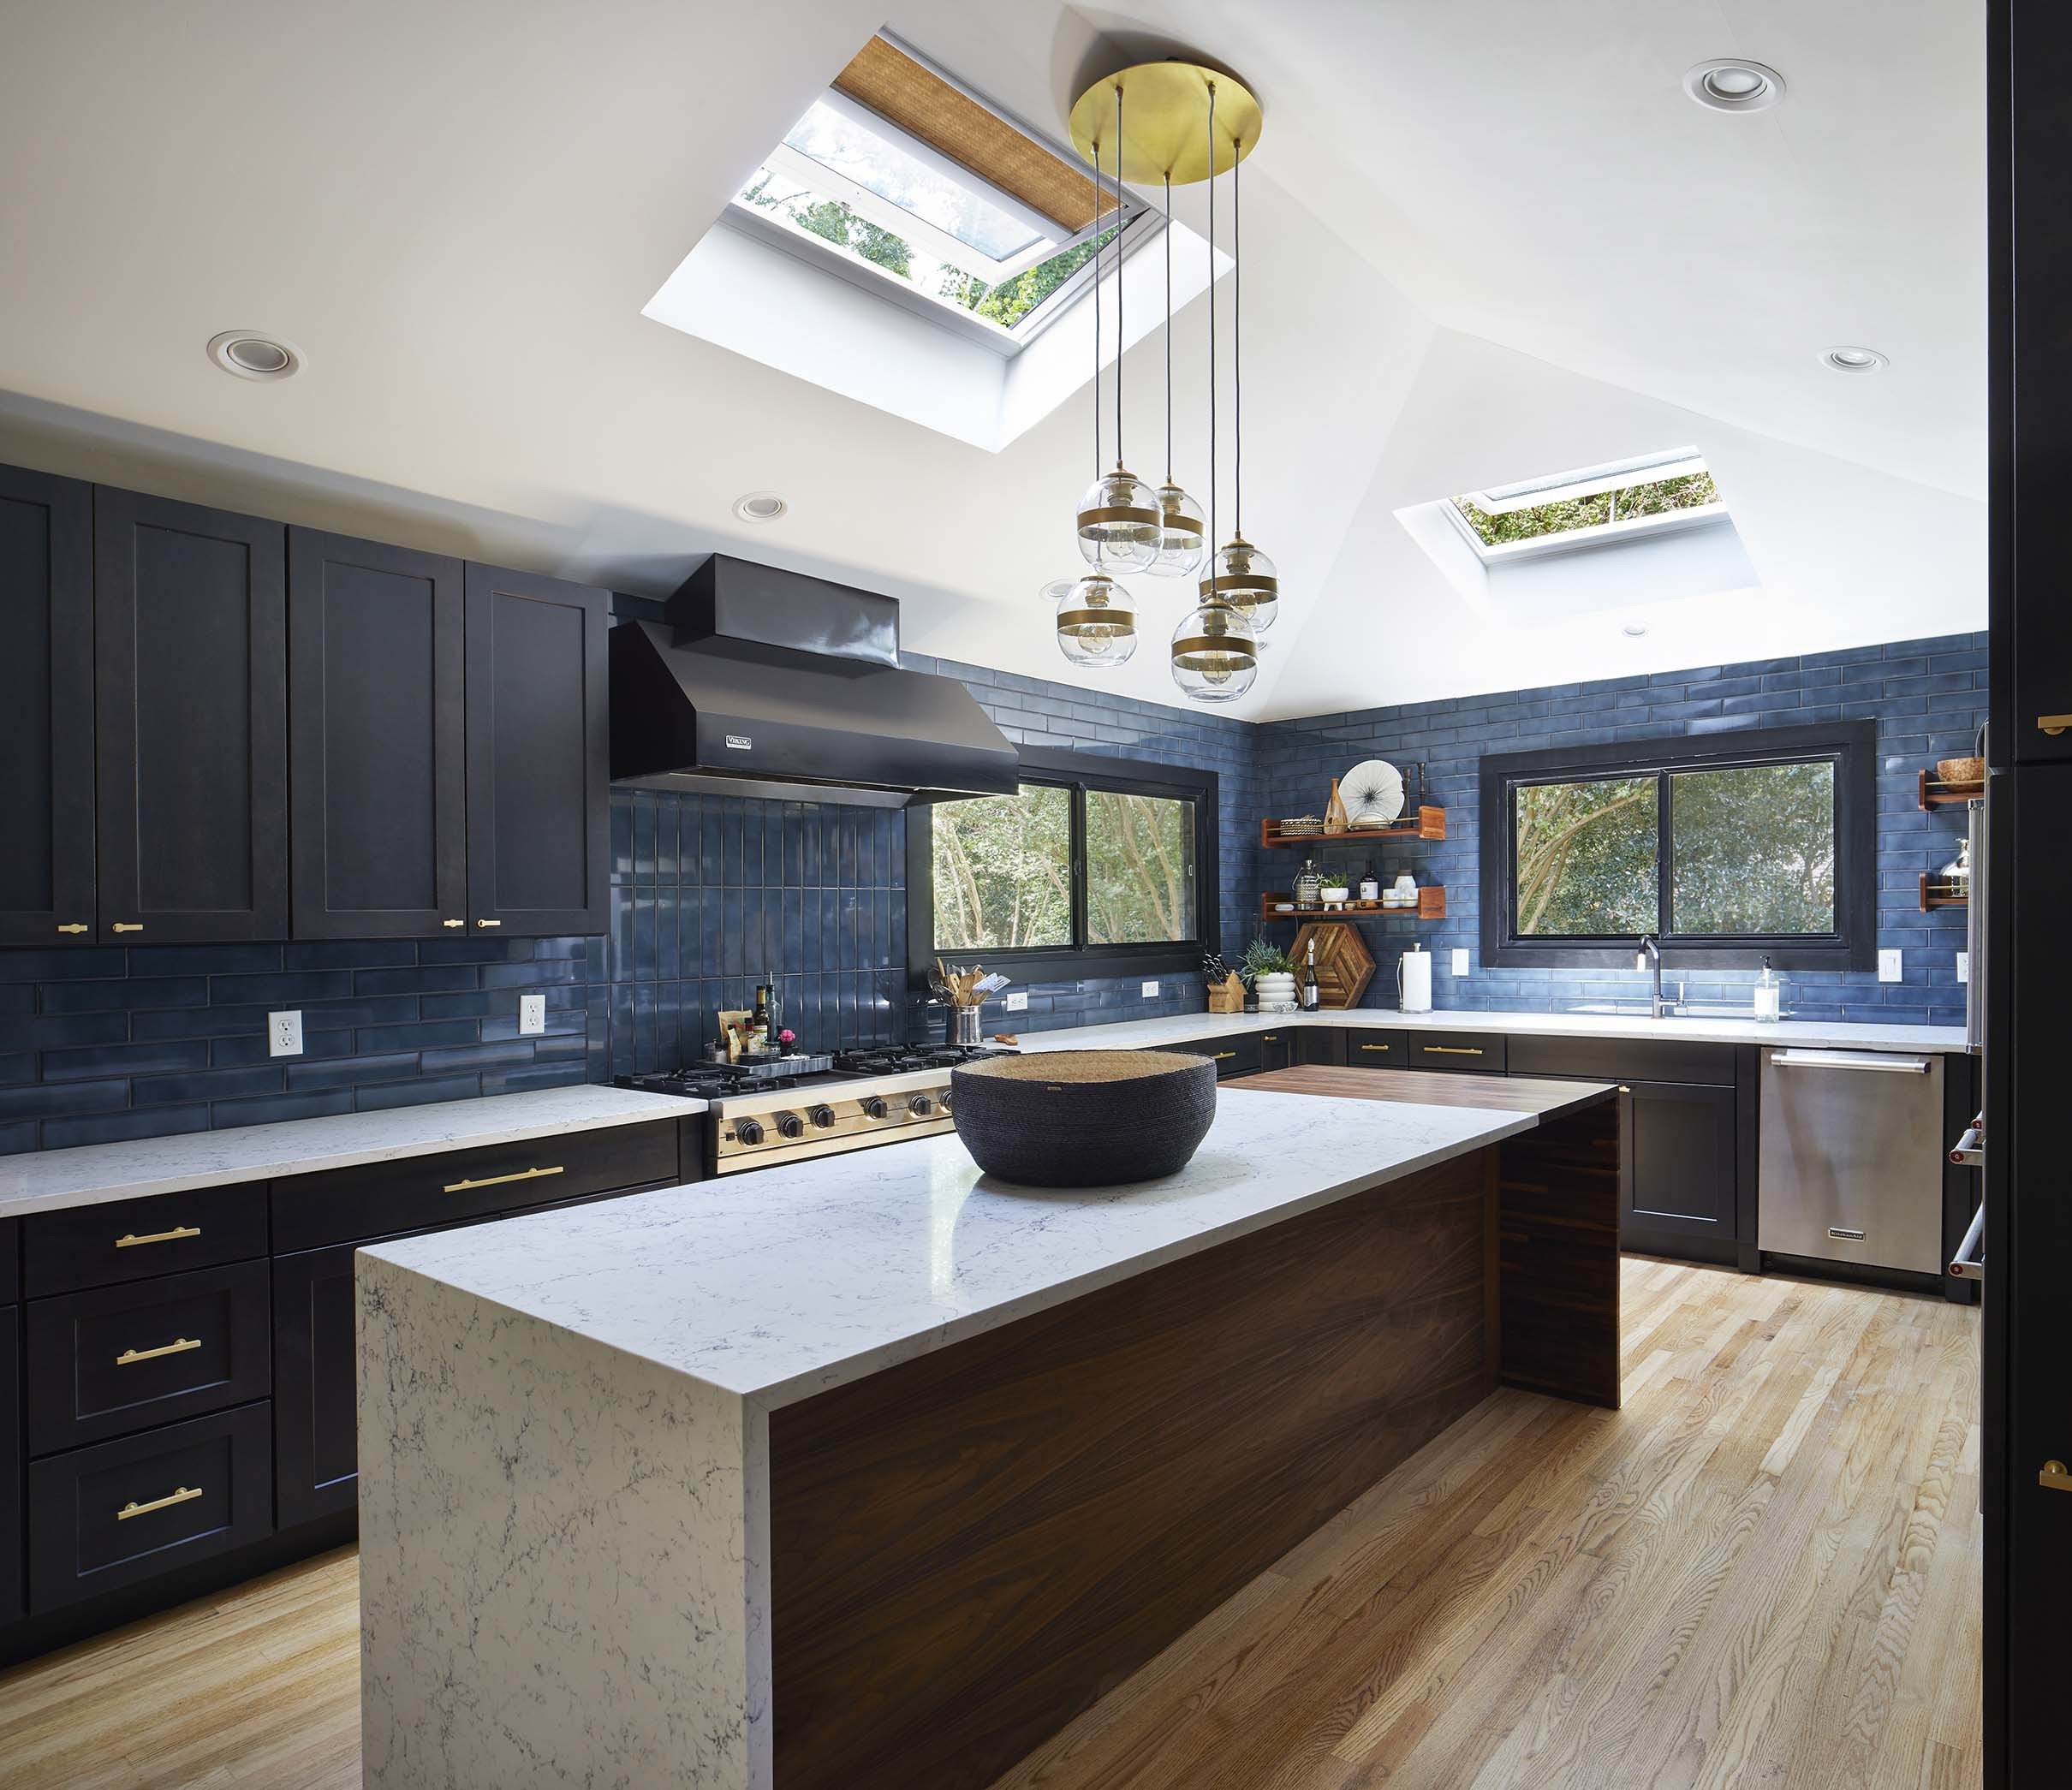 Kitchen two skylights with gold shades black cabinets brass hardware